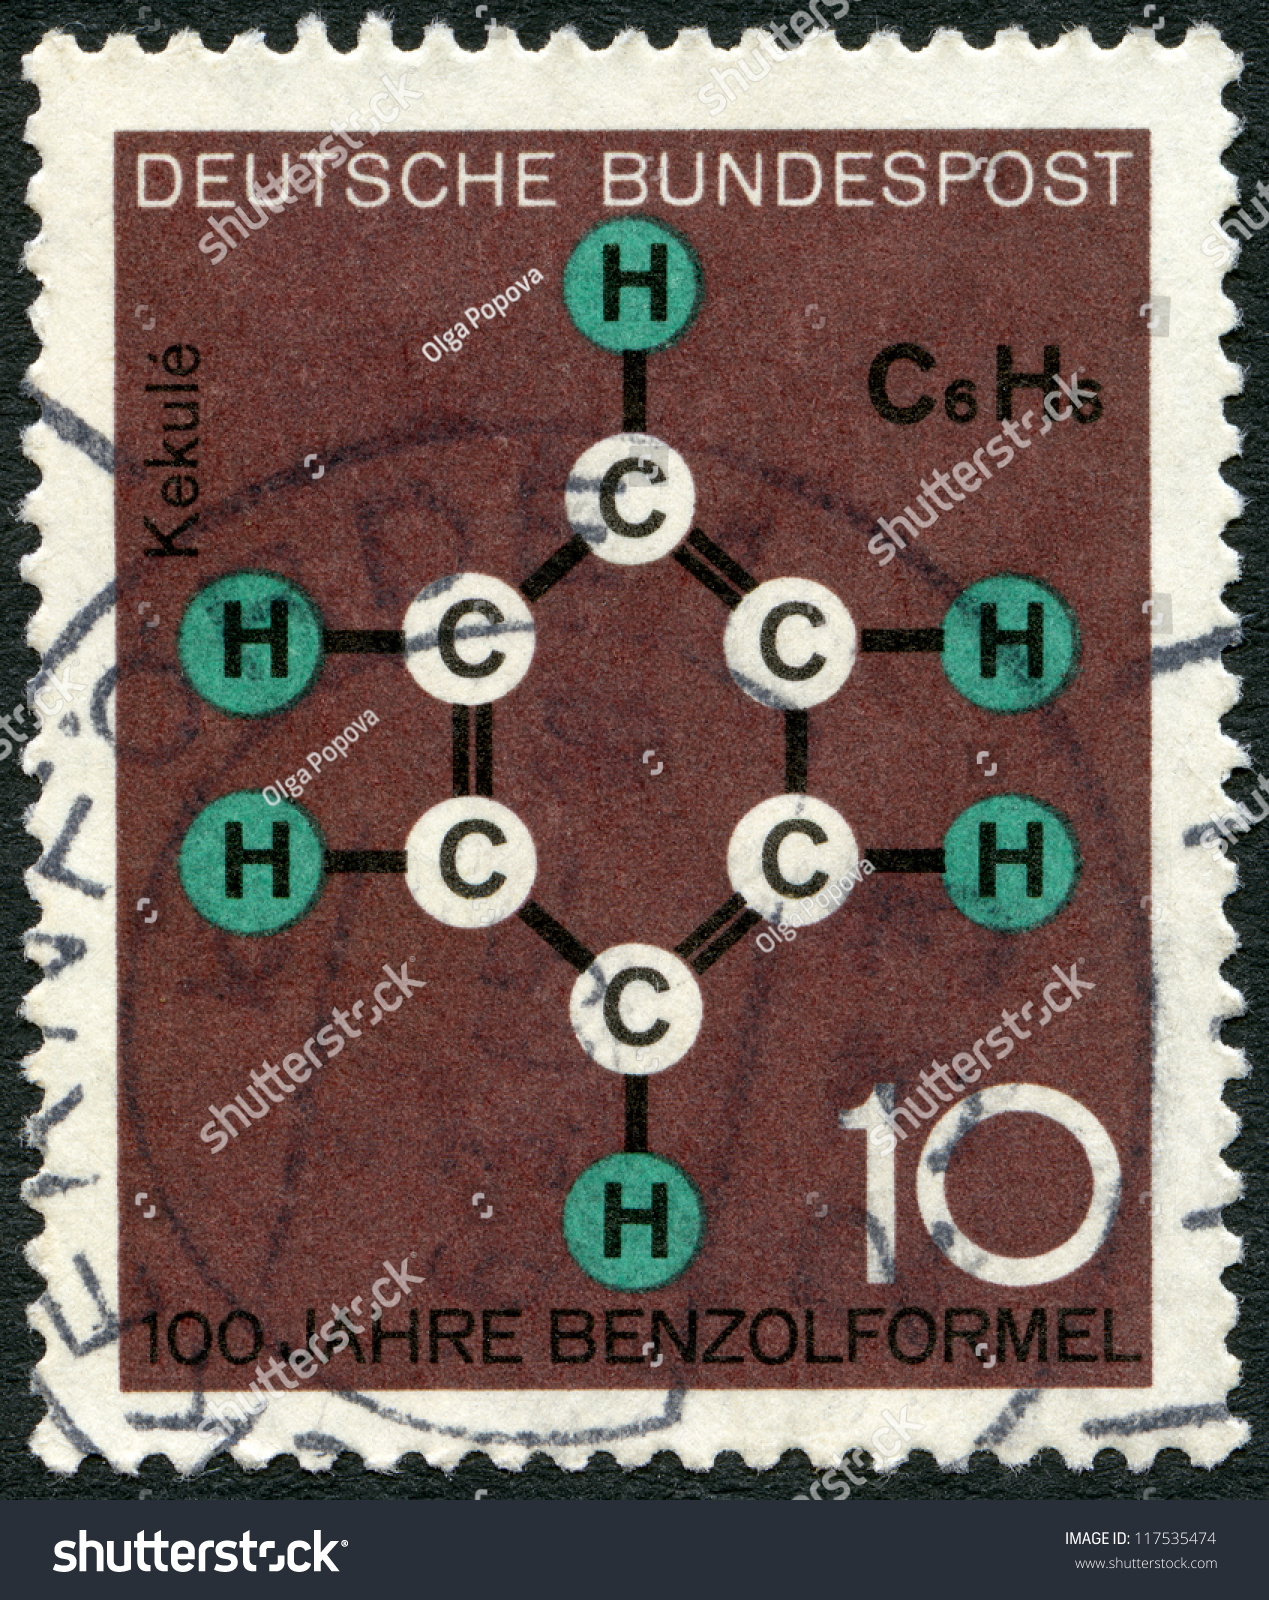 https://i1.wp.com/image.shutterstock.com/z/stock-photo-germany-circa-a-stamp-printed-in-germany-shows-benzene-ring-kekule-s-formula-centenary-of-117535474.jpg